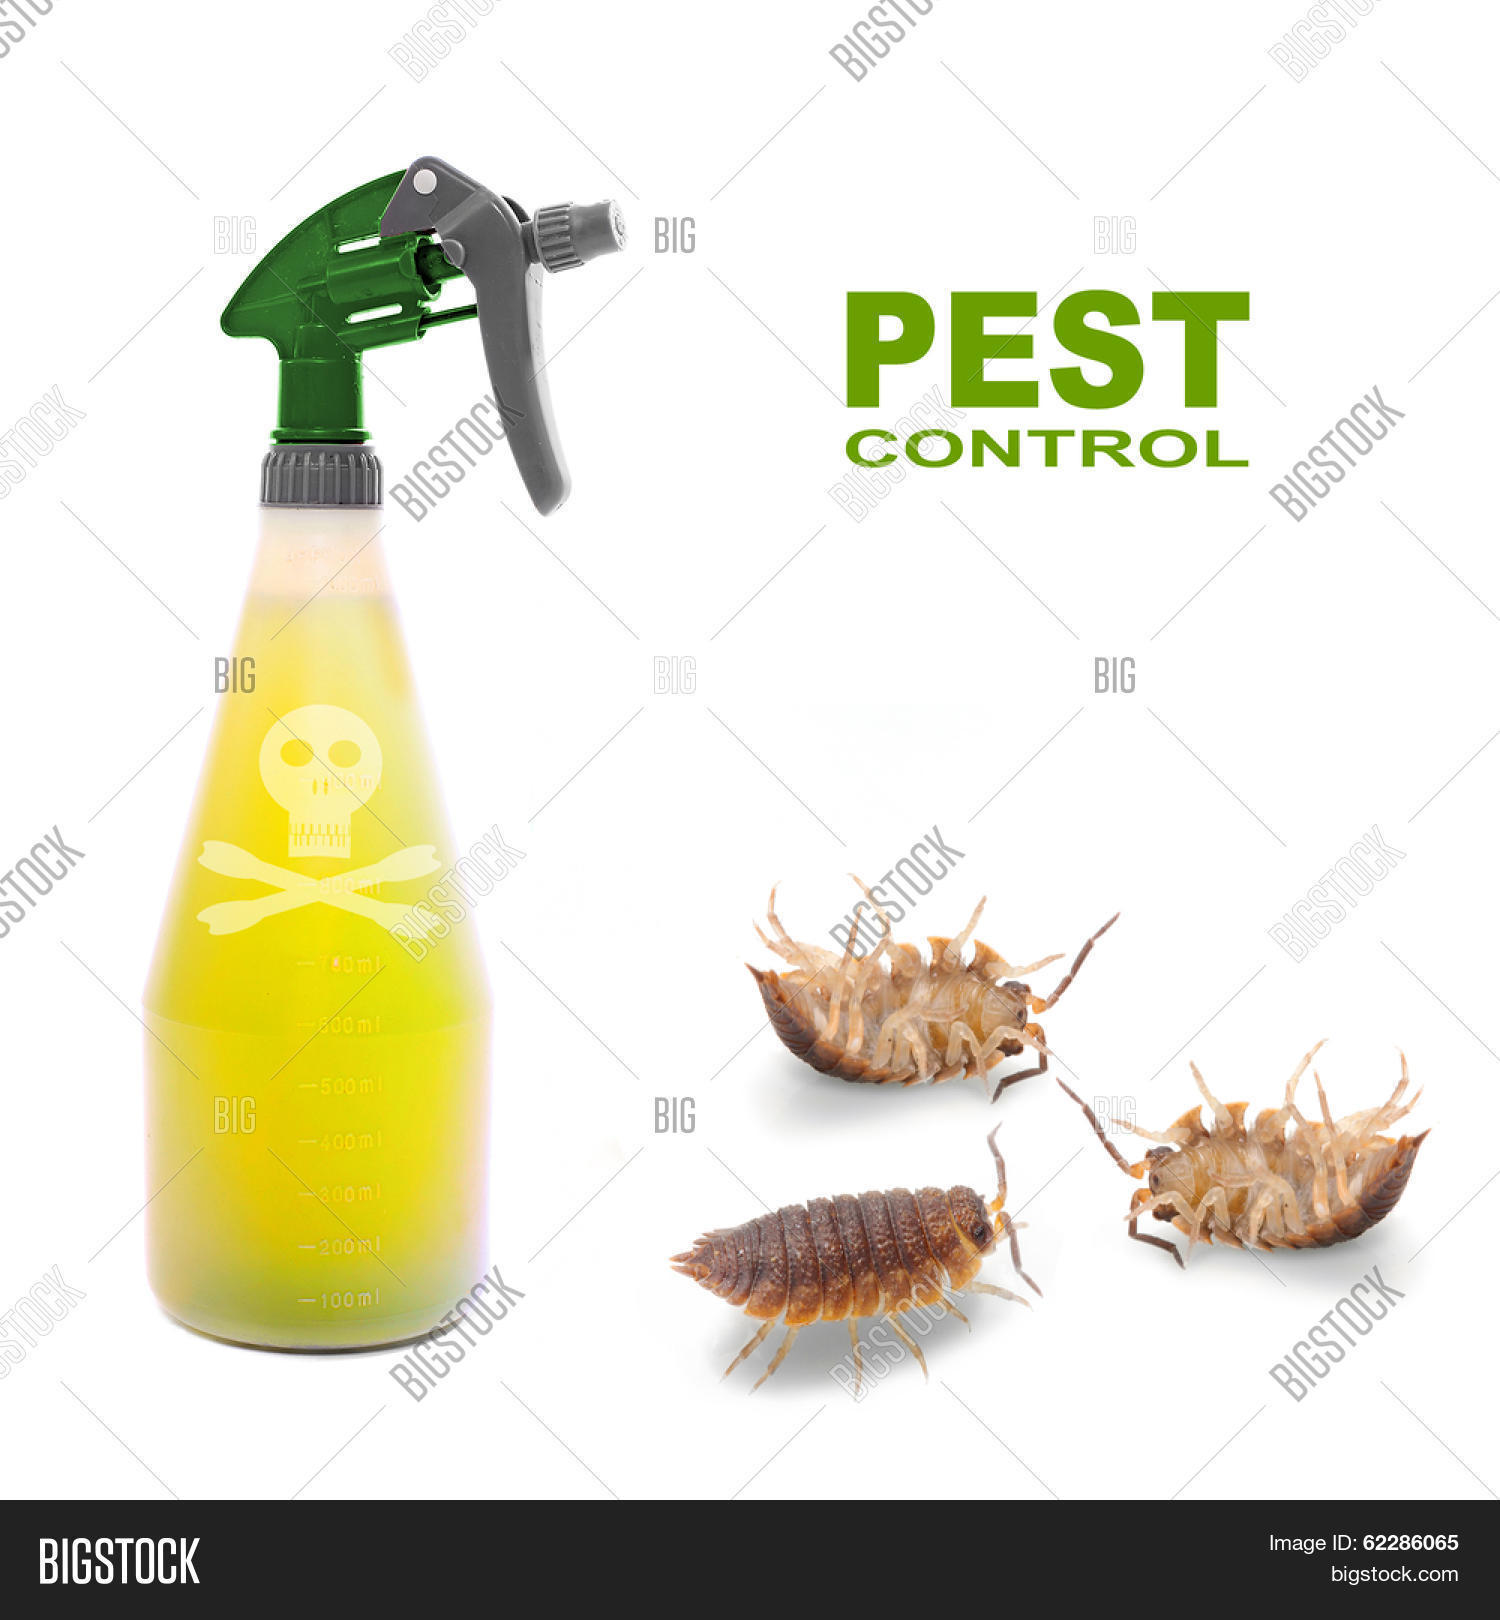 Plastic sprayer with insecticide and The Pill.